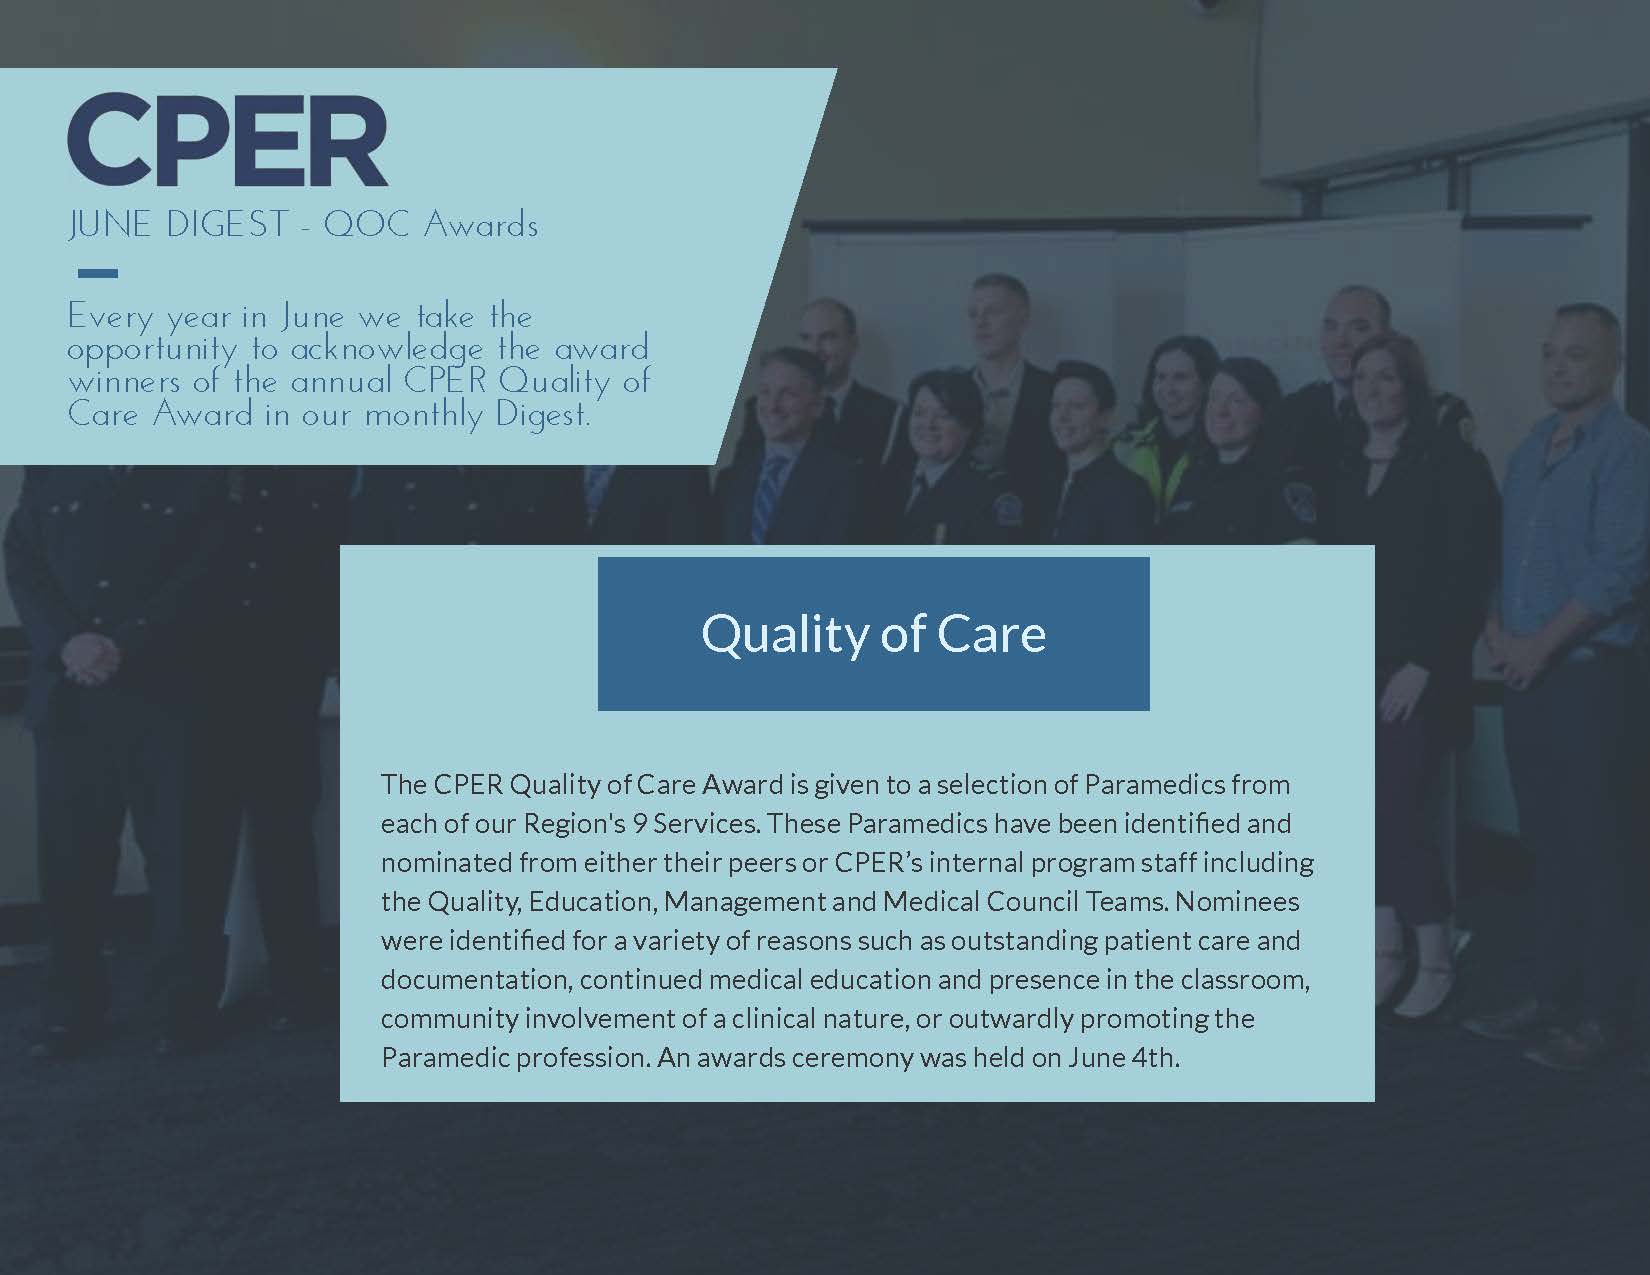 CPER Digest June 2019 QoC Awards Page 1